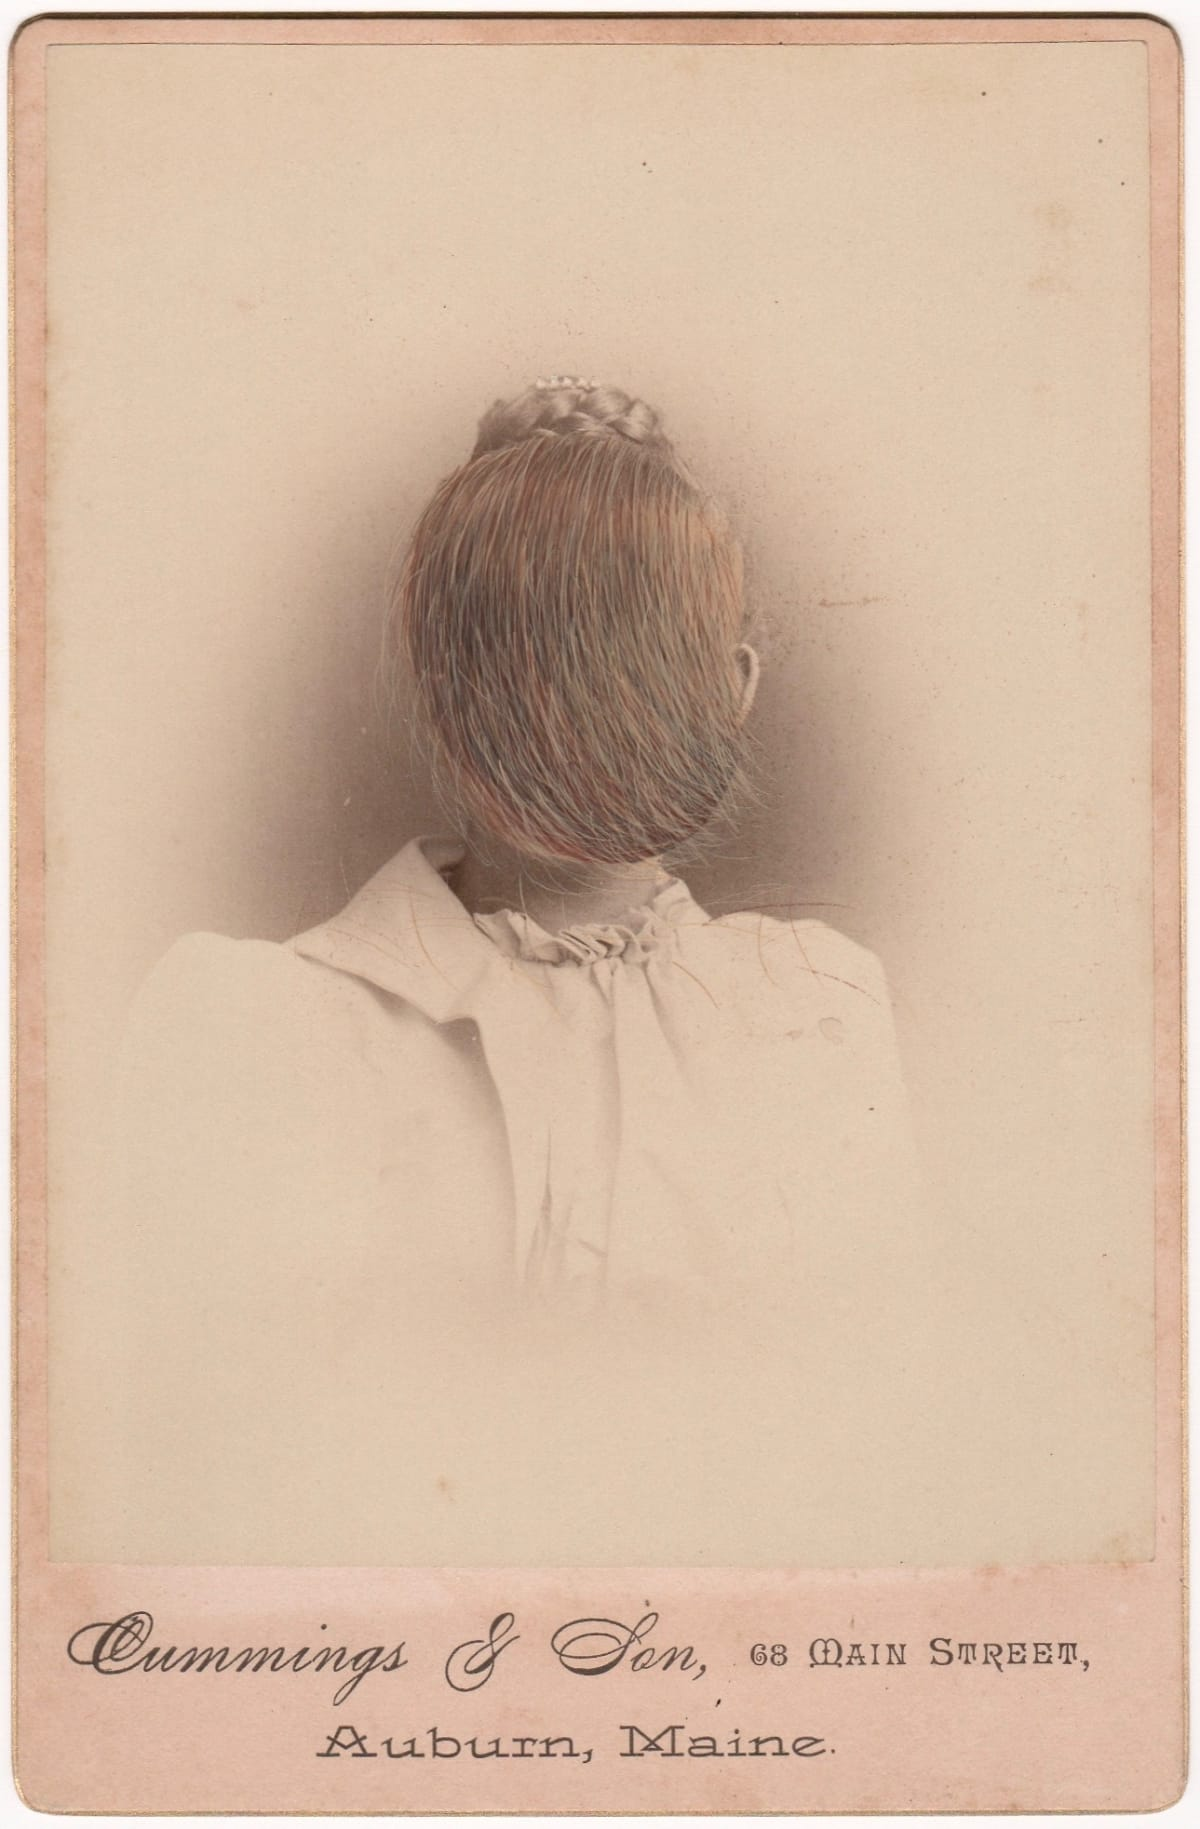 Vintage painting in shades of tan and black. The painting depicts a portrait of a woman whose face is covered by strokes of hair. The may challenge the viewer's perspective into believing if it is the woman's rear view.